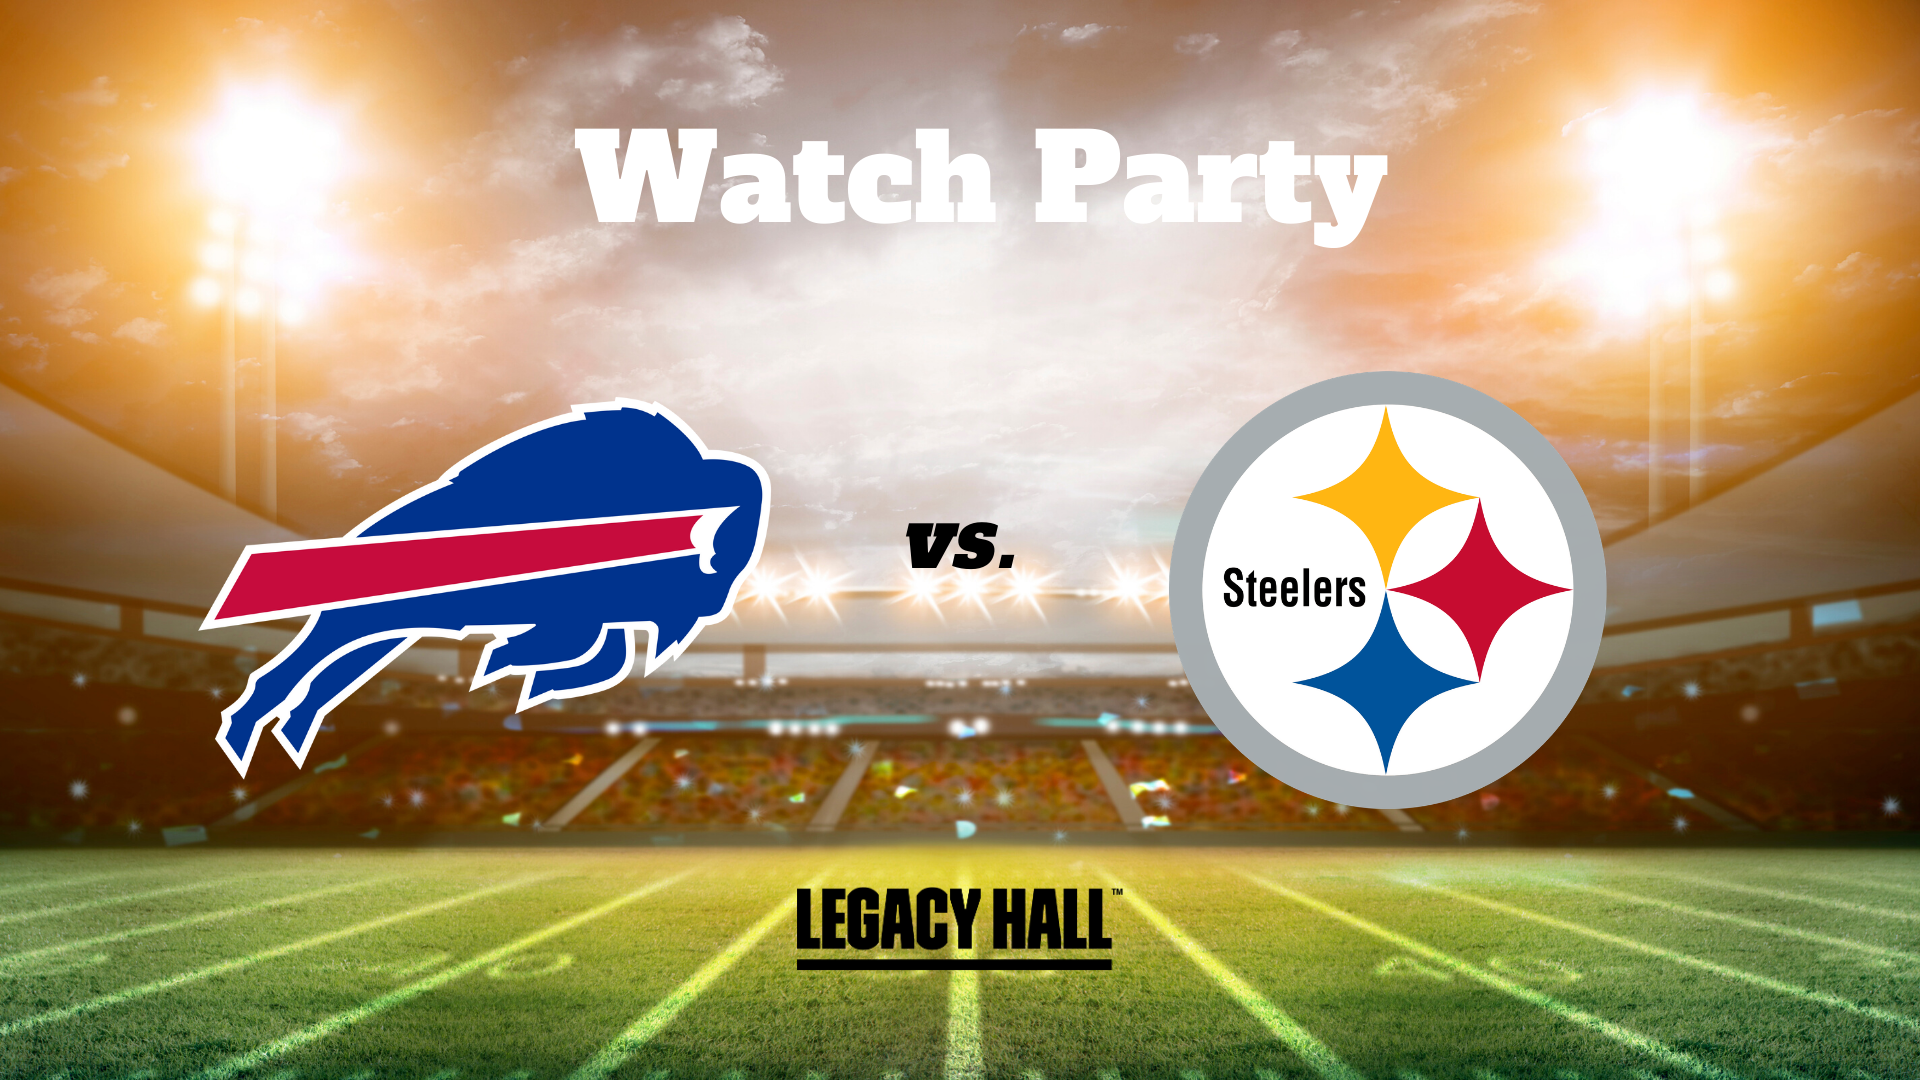 Bills vs. Steelers Watch Party - hero